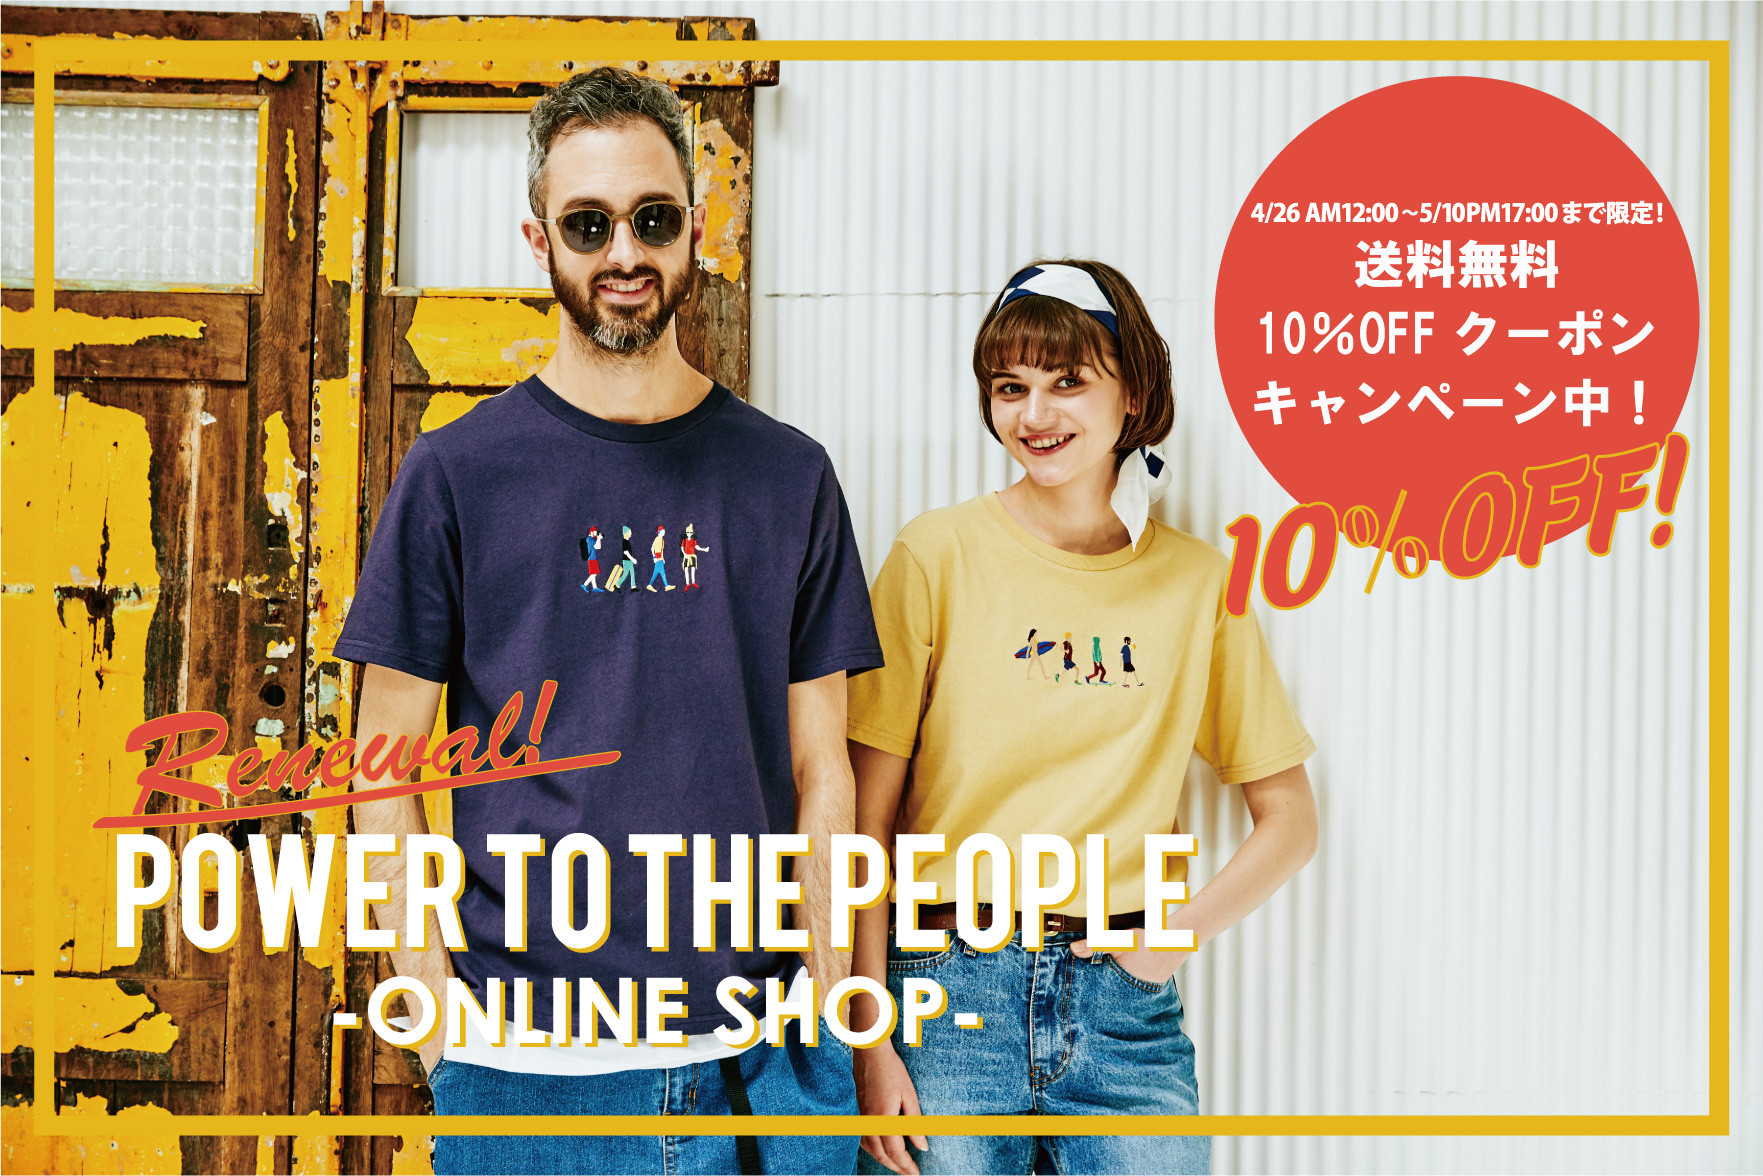 POWER TO THE PEOPLE ONLINE SHOPリニューアルキャンペーン!